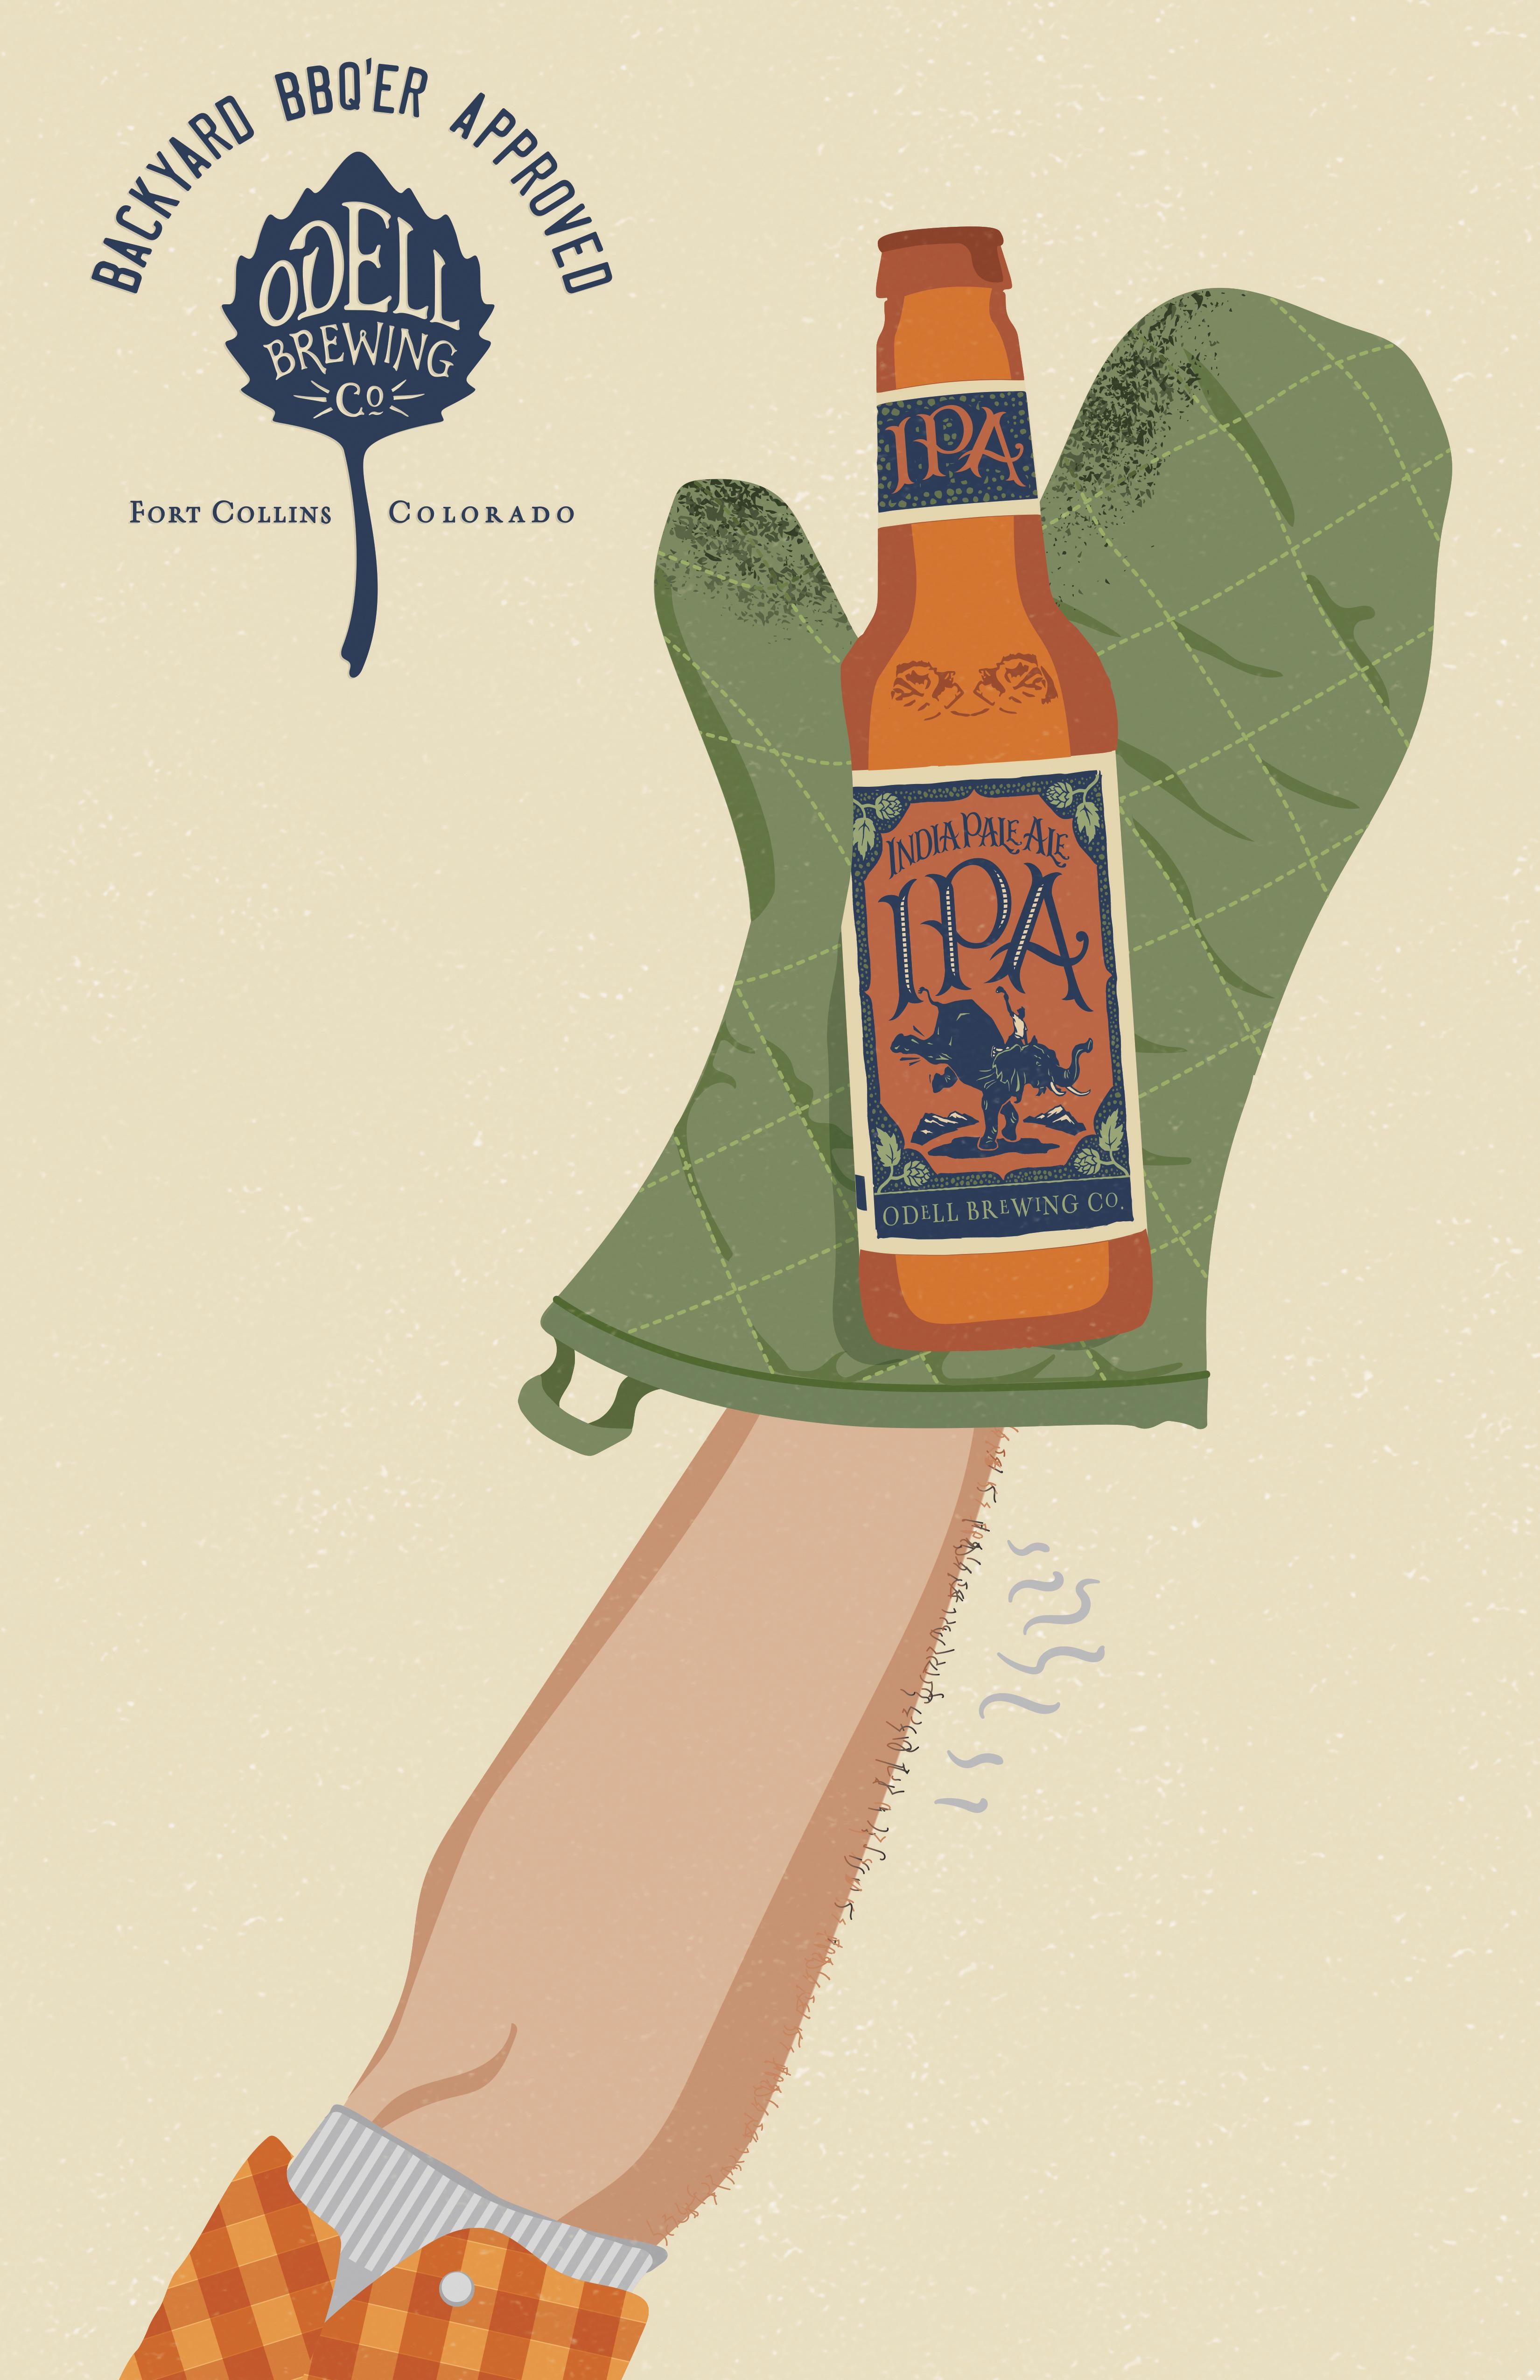 Odell Brewing Co Print Ad - Odell IPA Day - BBQ